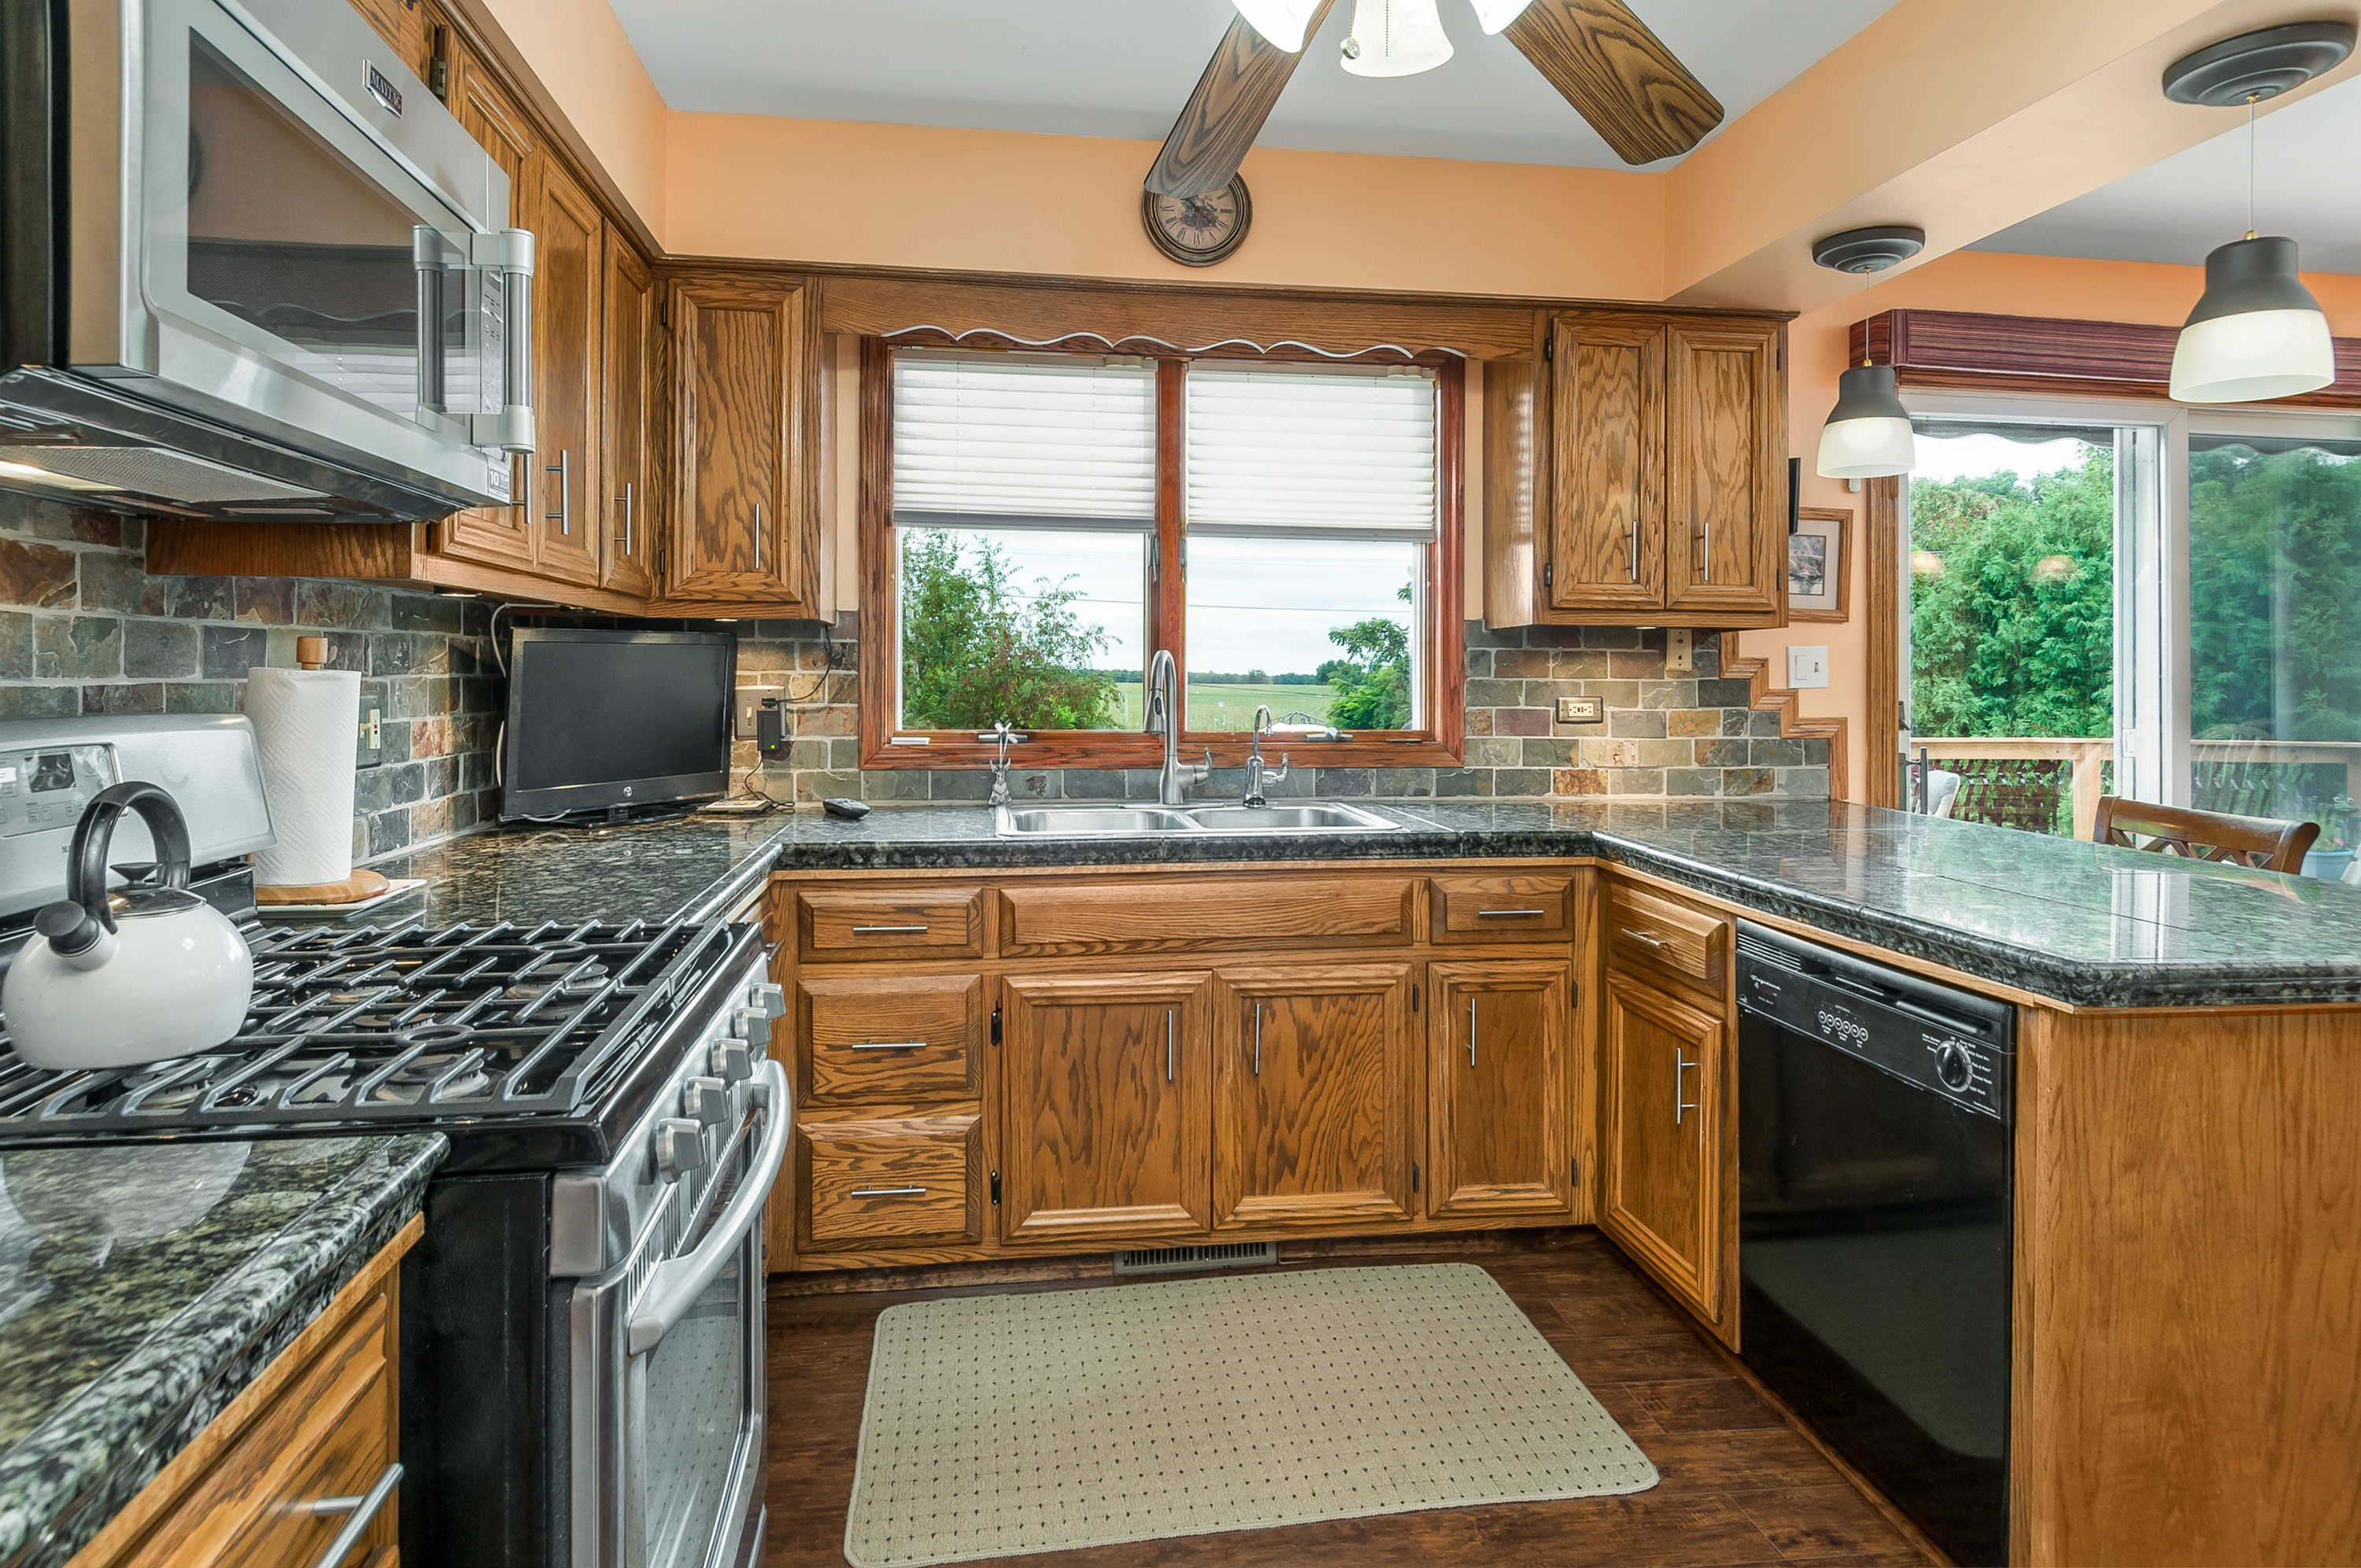 Beautiful Lake Holiday, IL oak kitchen at 952 Holiday Dr., Sandwich, Illinois